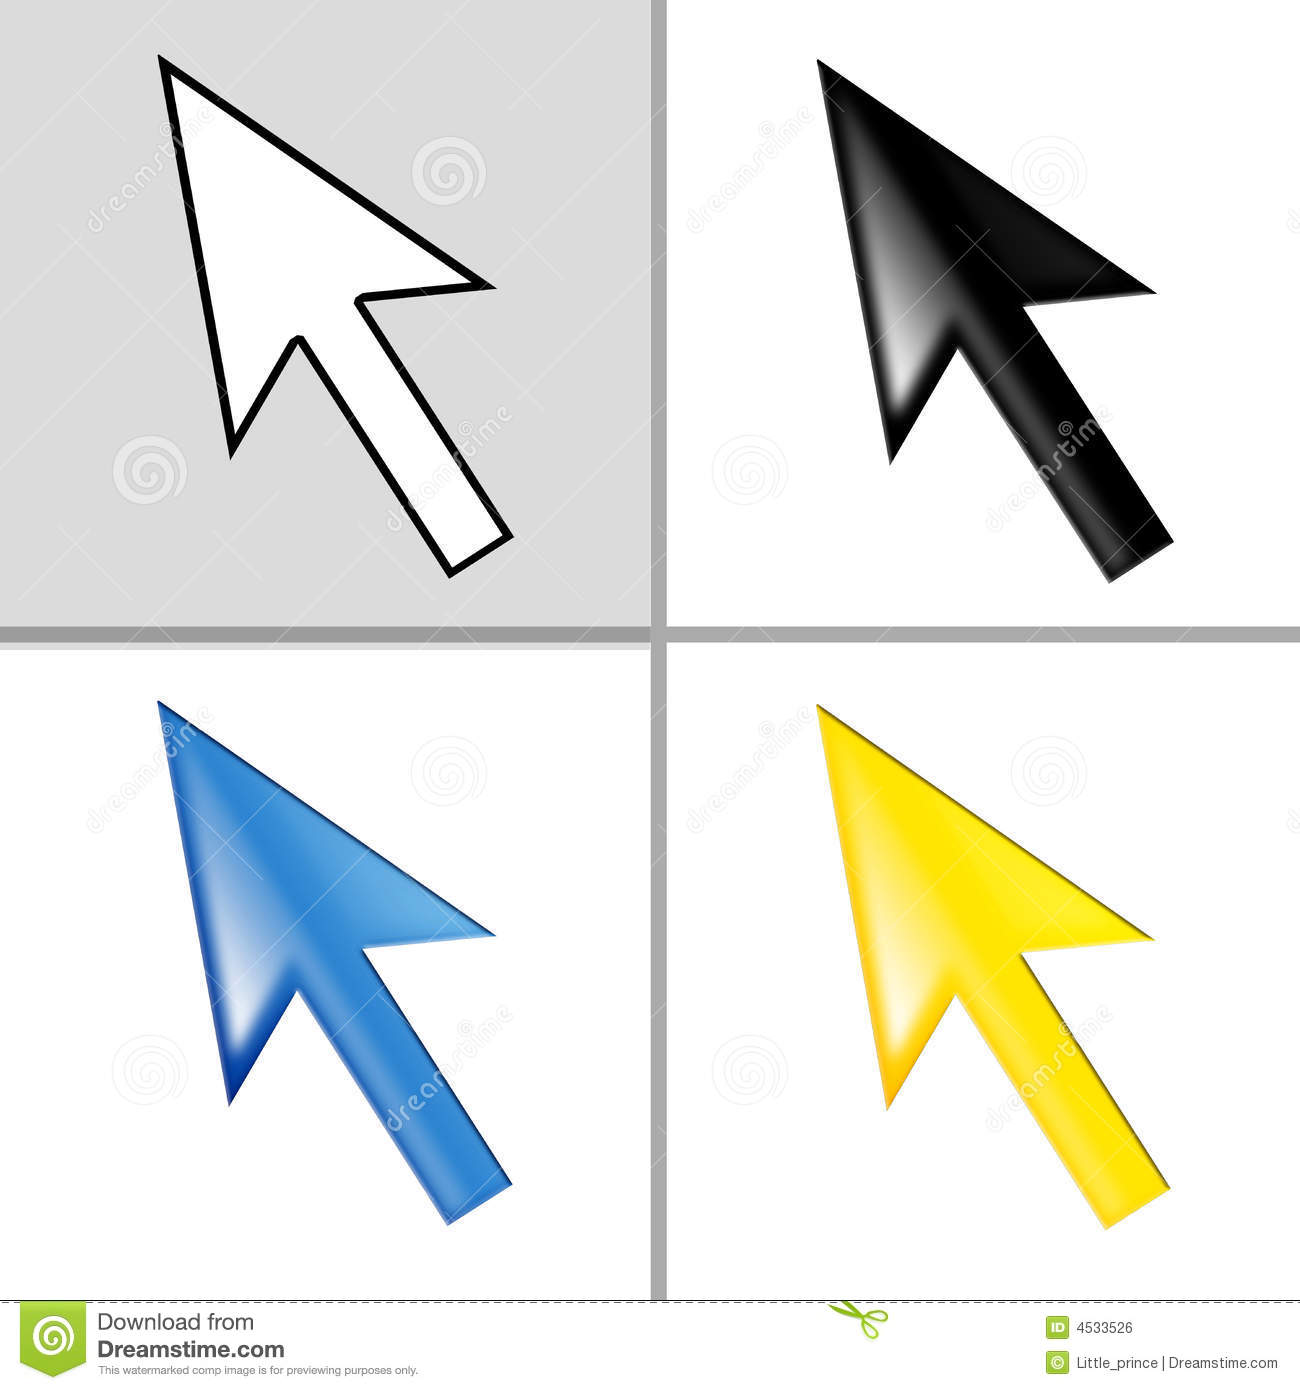 how to change the mouse cursor on a website